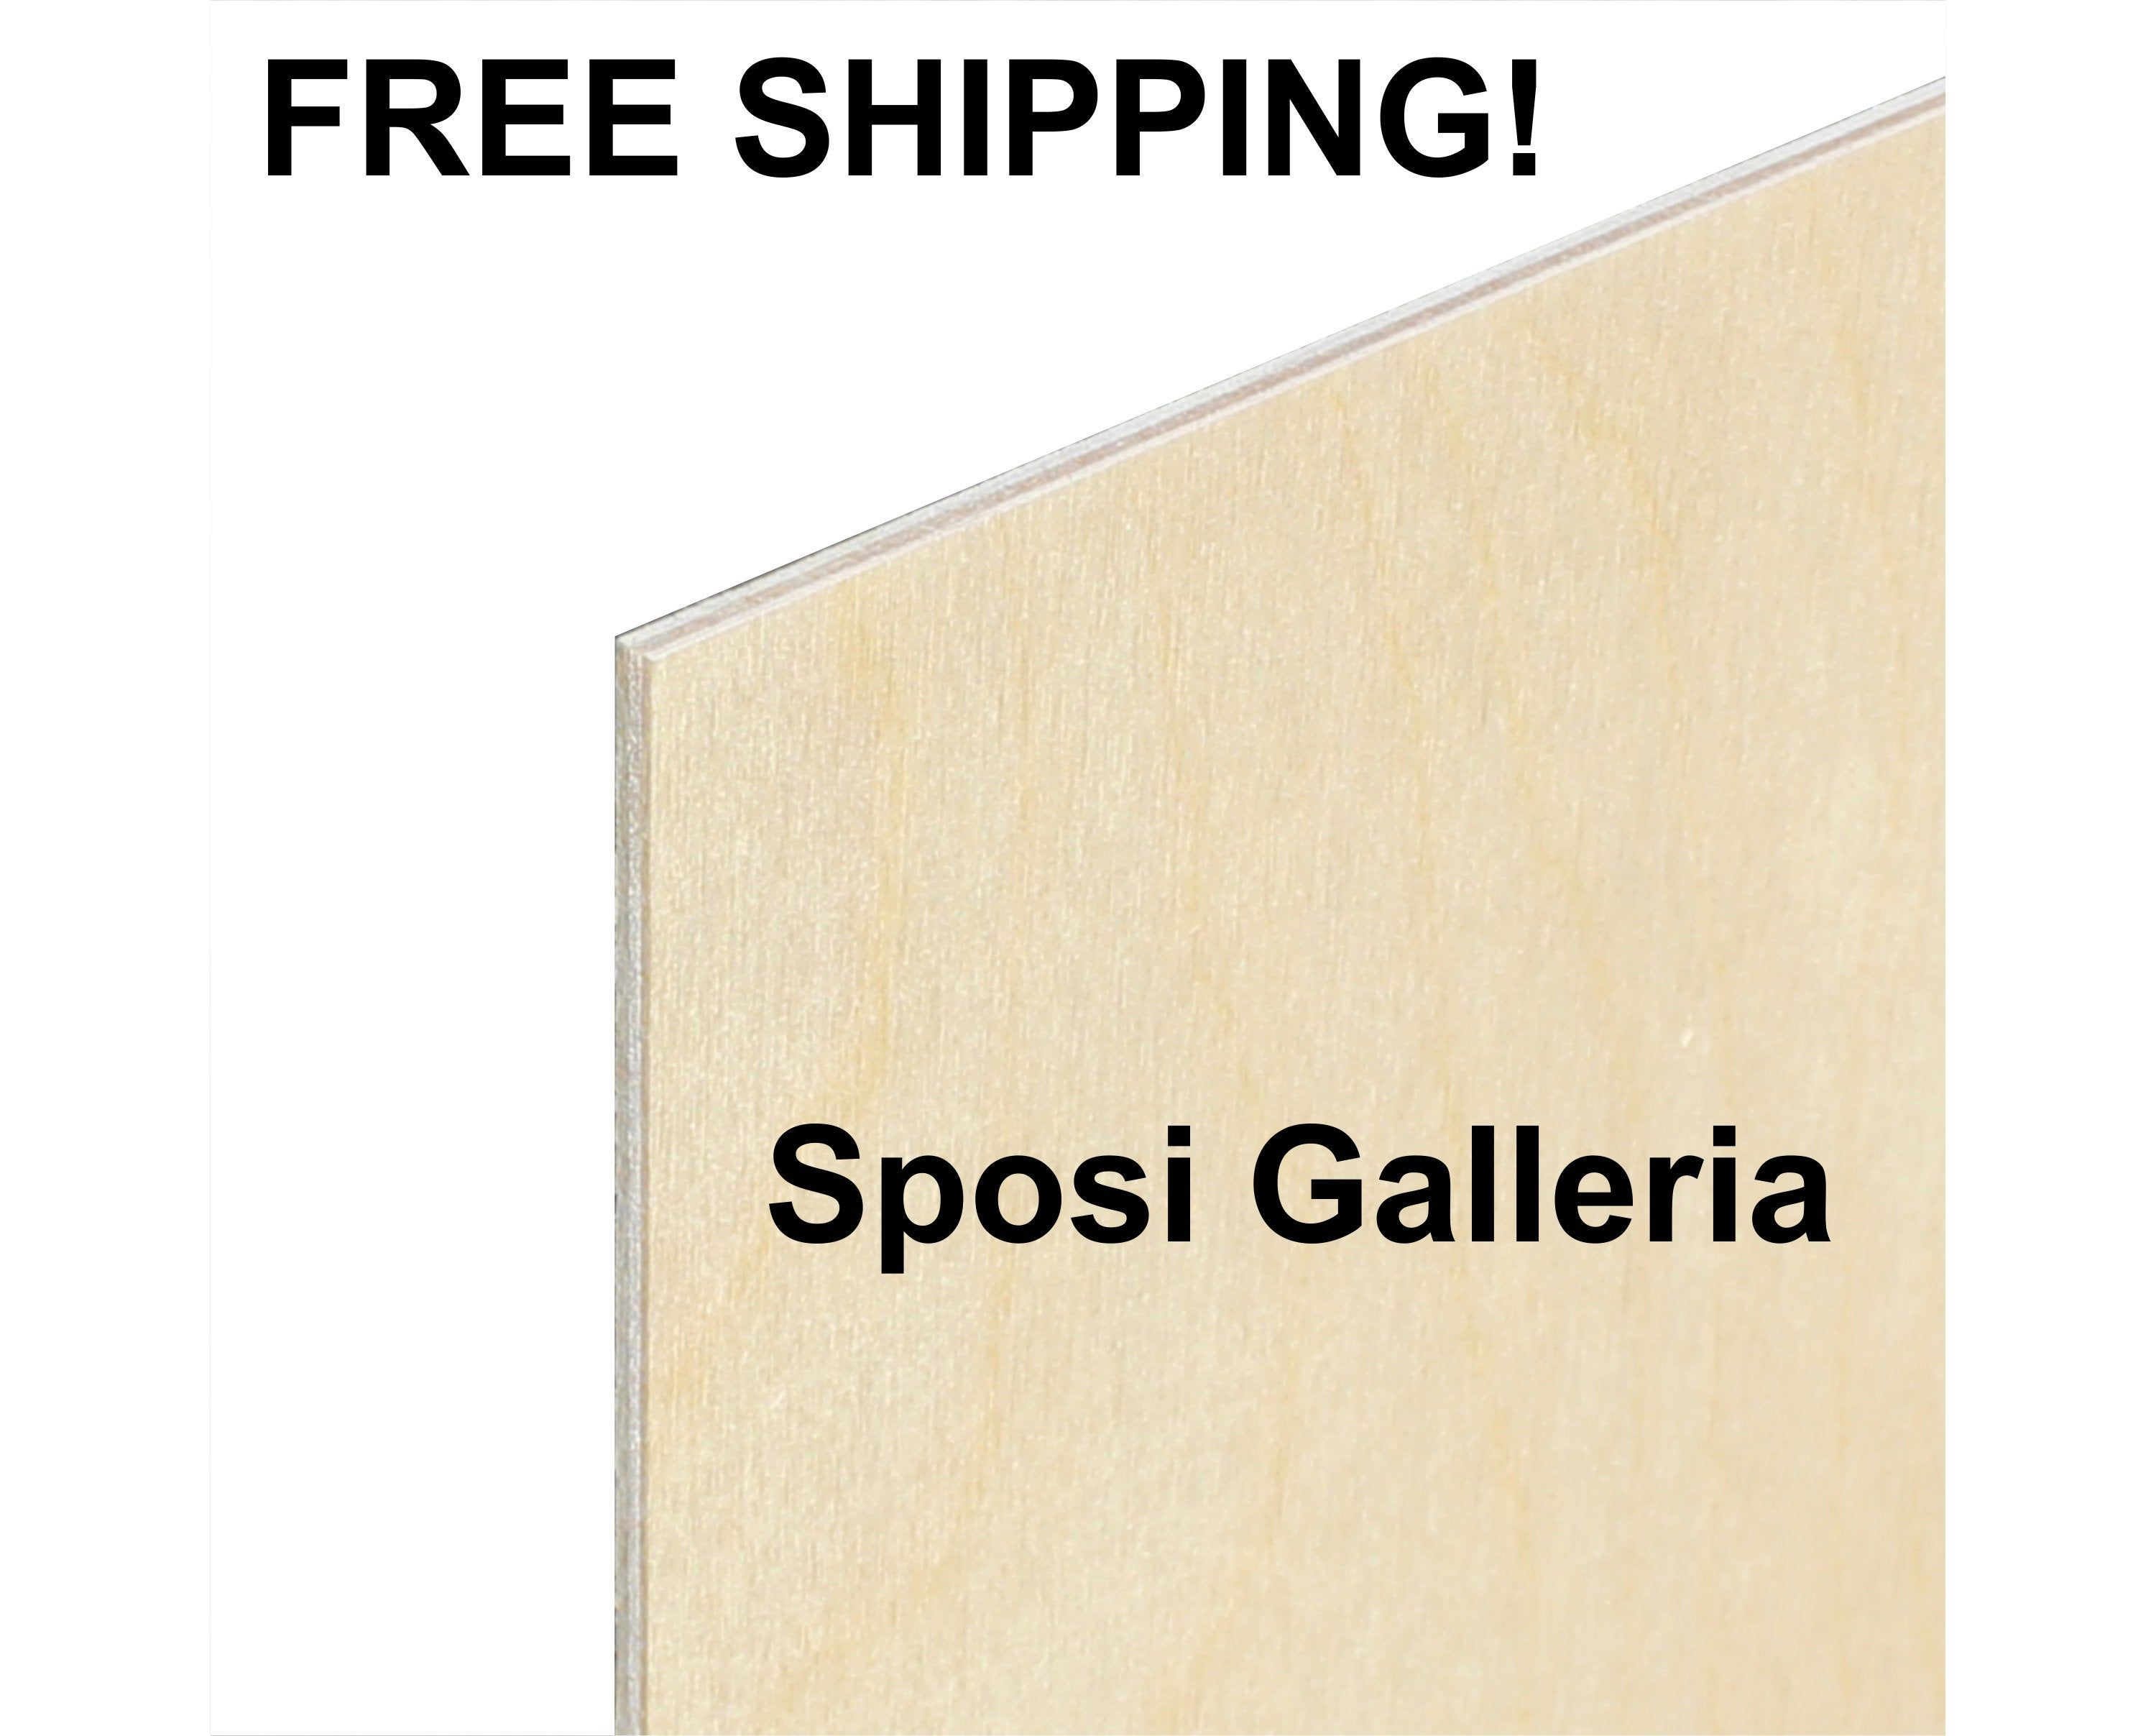 1 8 Birch 11x14 3mm Baltic Birch In 2020 Sign Materials Cast Acrylic Sheet Special Events Decor